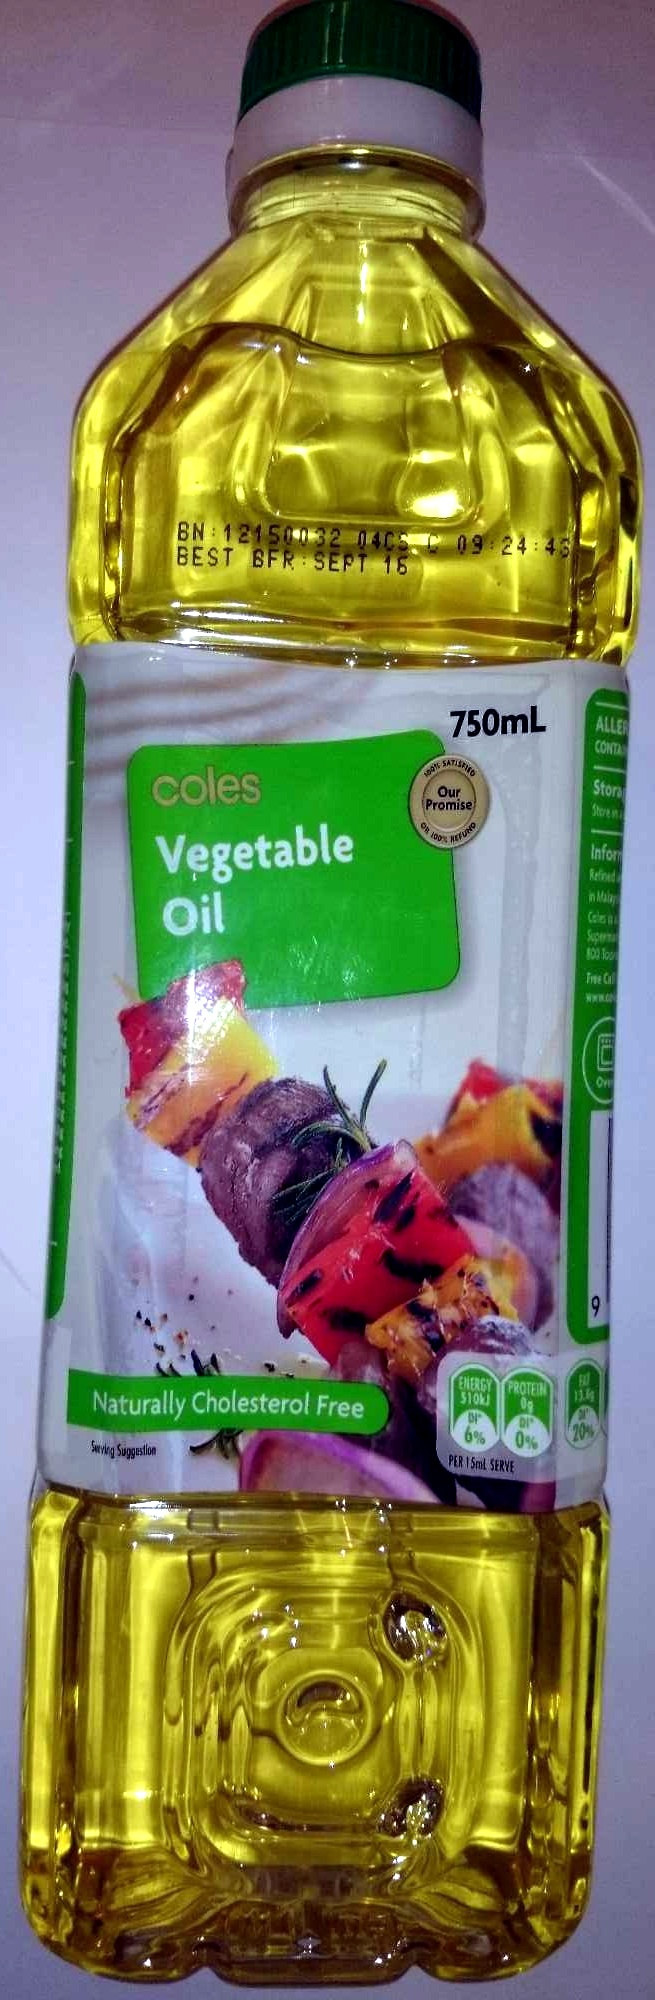 Vegetable Oil - Product